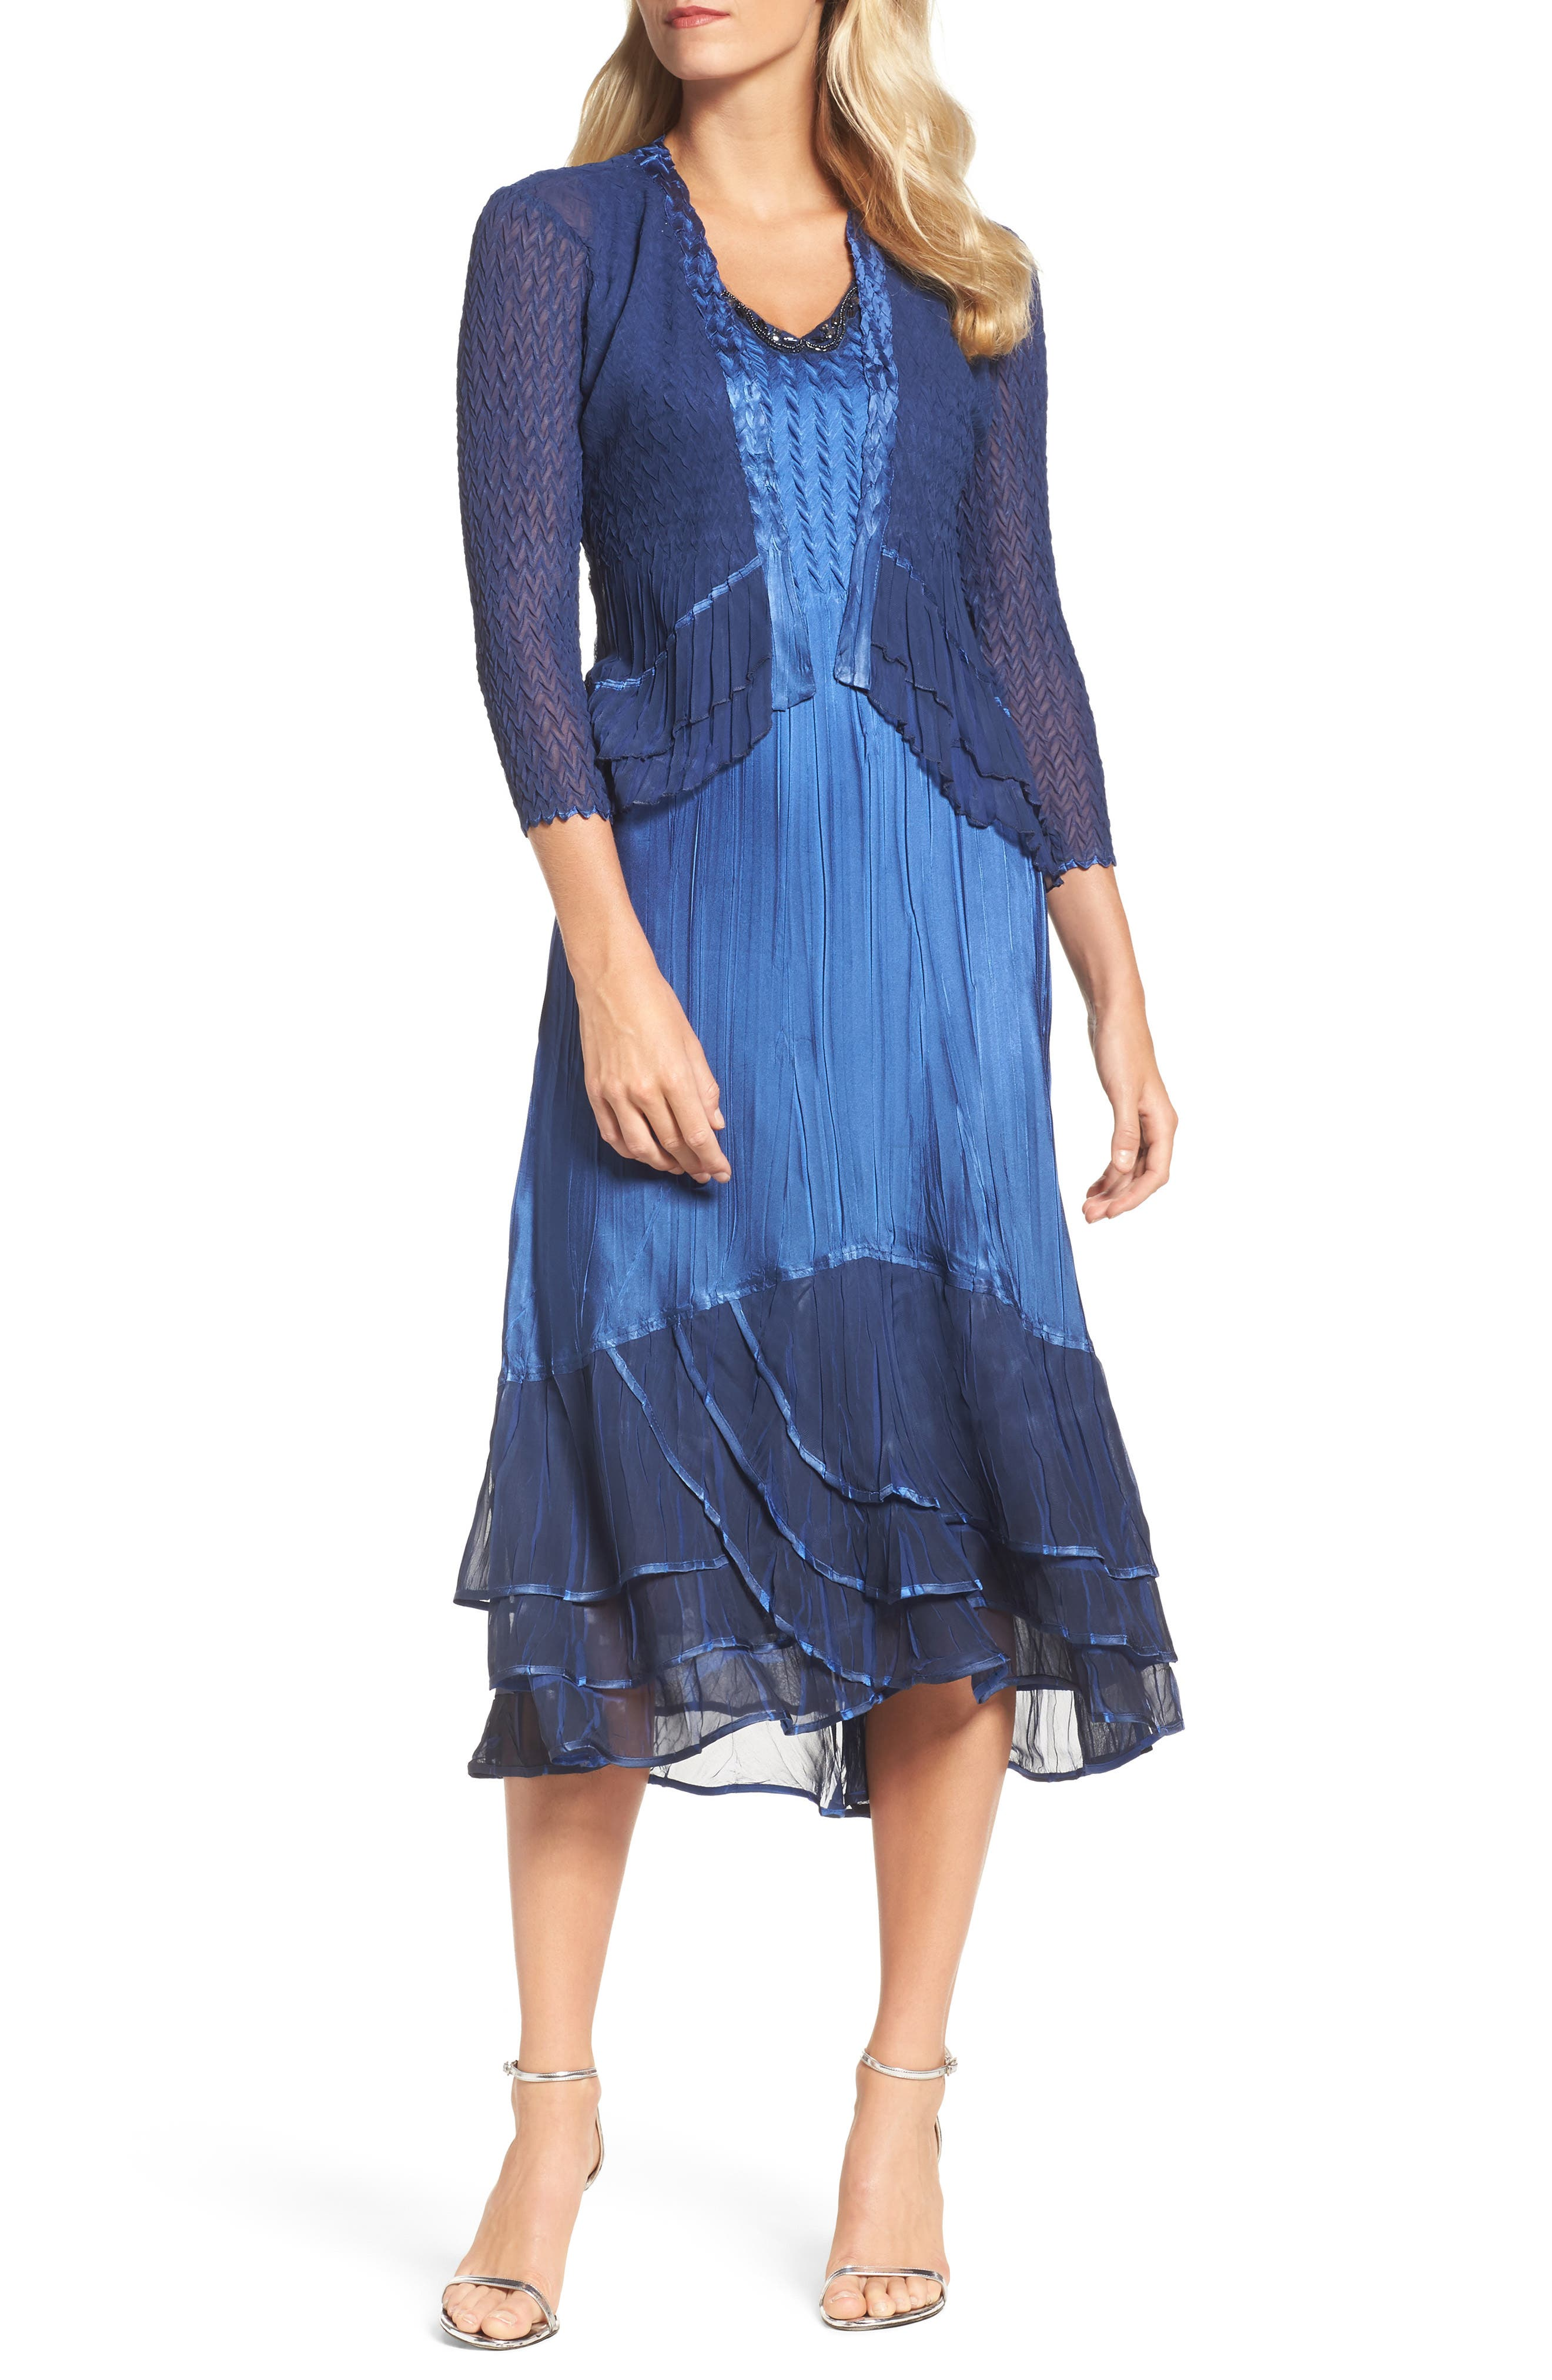 Komarov Embellished Tiered Hem Dress with Jacket (Regular & Petite)